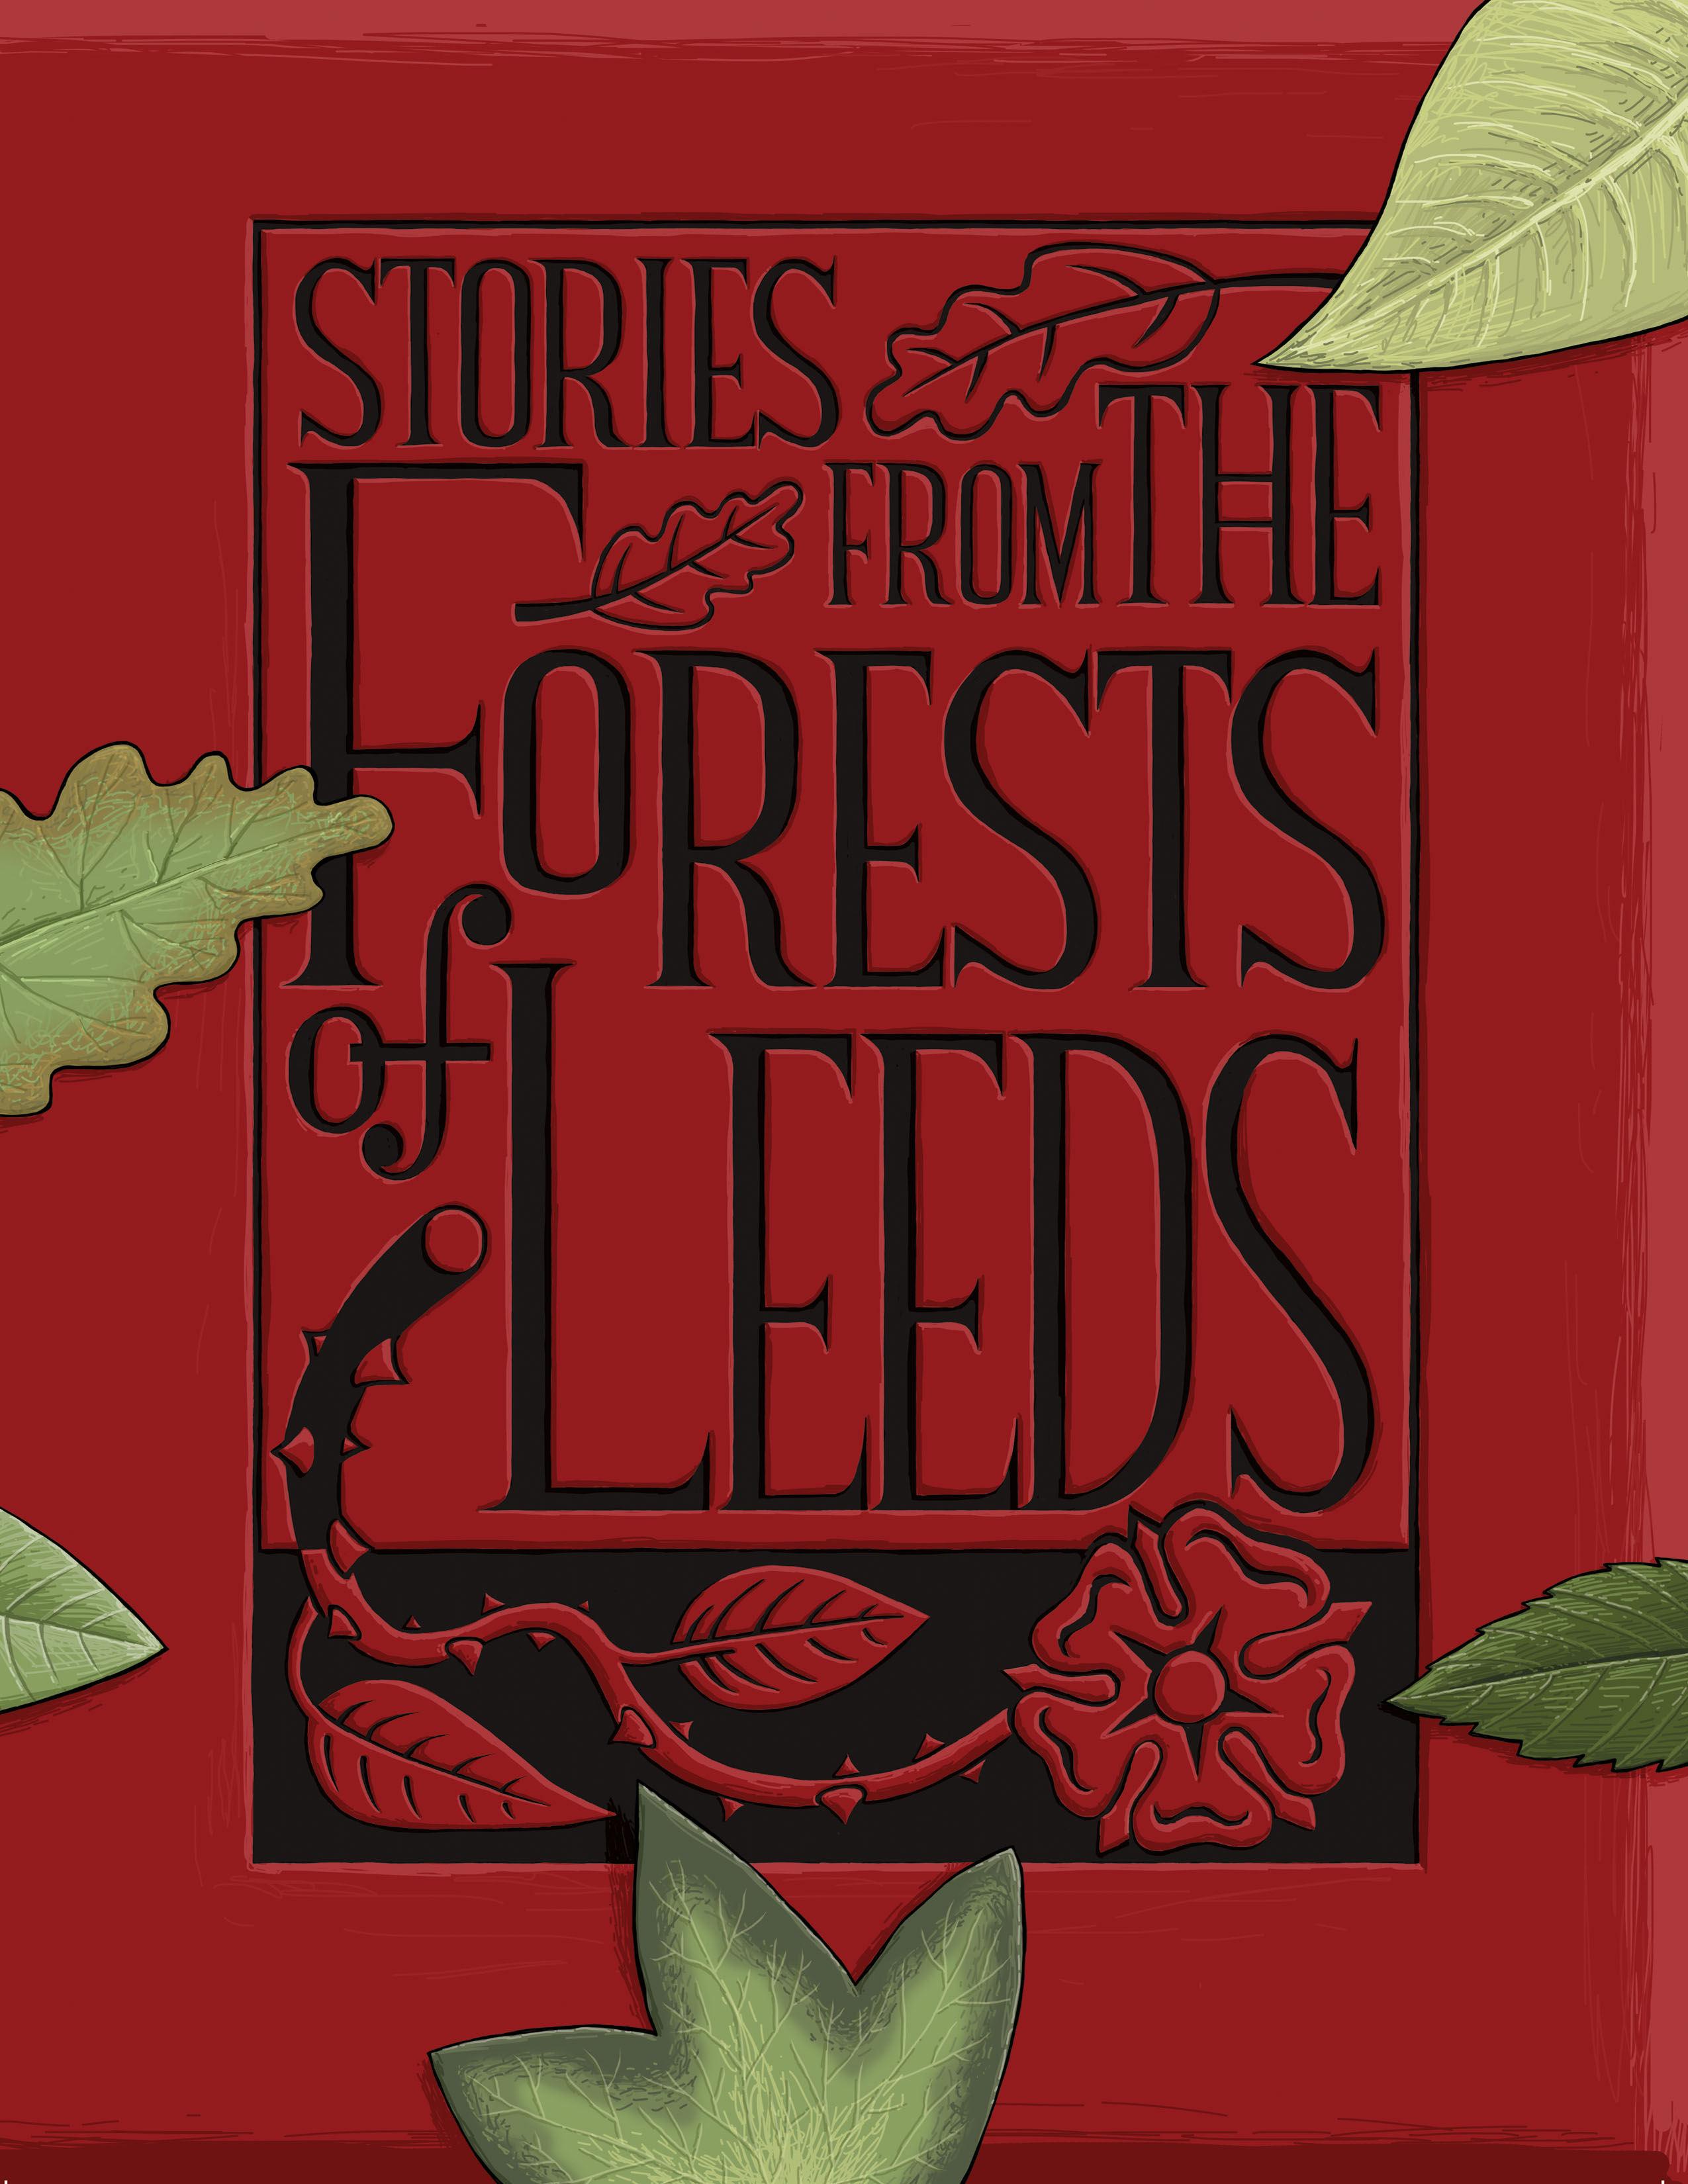 Stories from the Forests of Leeds